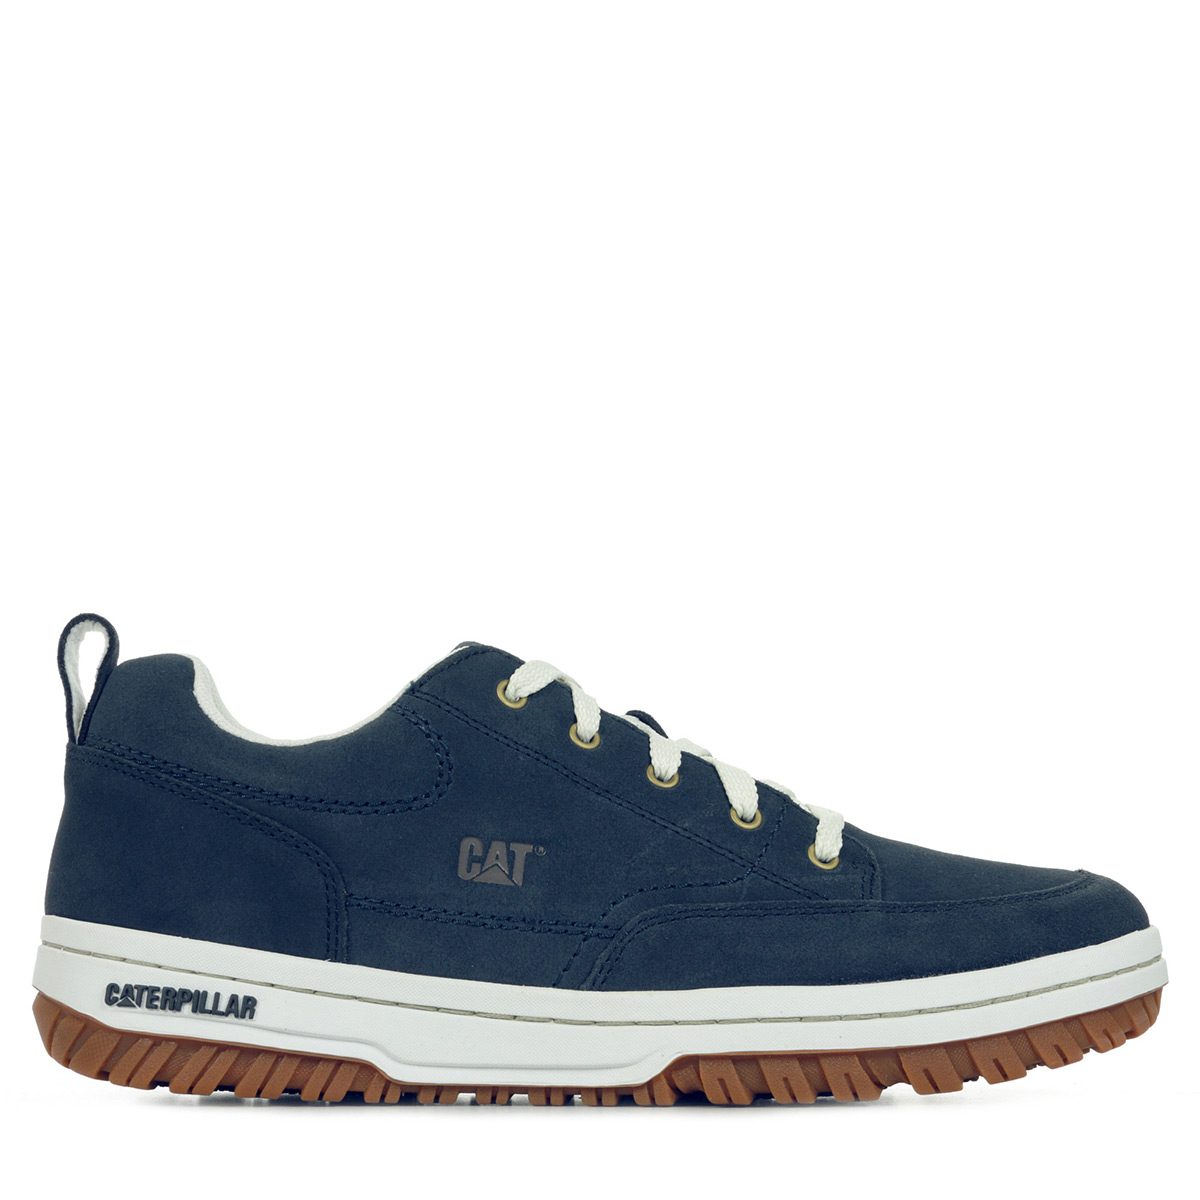 chaussures baskets caterpillar homme decade taille bleu bleue cuir lacets ebay. Black Bedroom Furniture Sets. Home Design Ideas